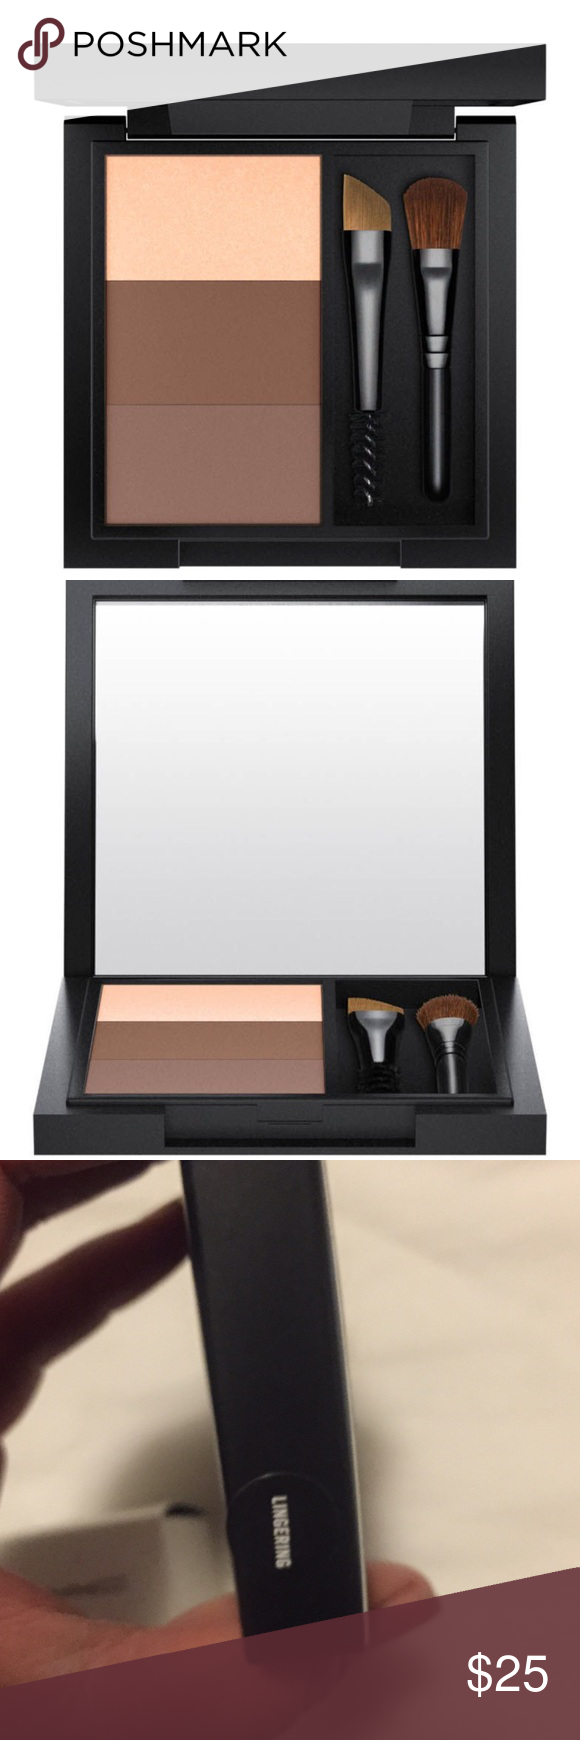 Great Brows all in One by MAC in Lingering This compact is brand New never been used or opened. Mac Brow all in one compact the color is Lingering comes with 3 tones 2 for Brows and the other for highlighting. Also includes 2 small brushes . Brand New with Box. Great brow filler 🎉 MAC Cosmetics Makeup Eyebrow Filler